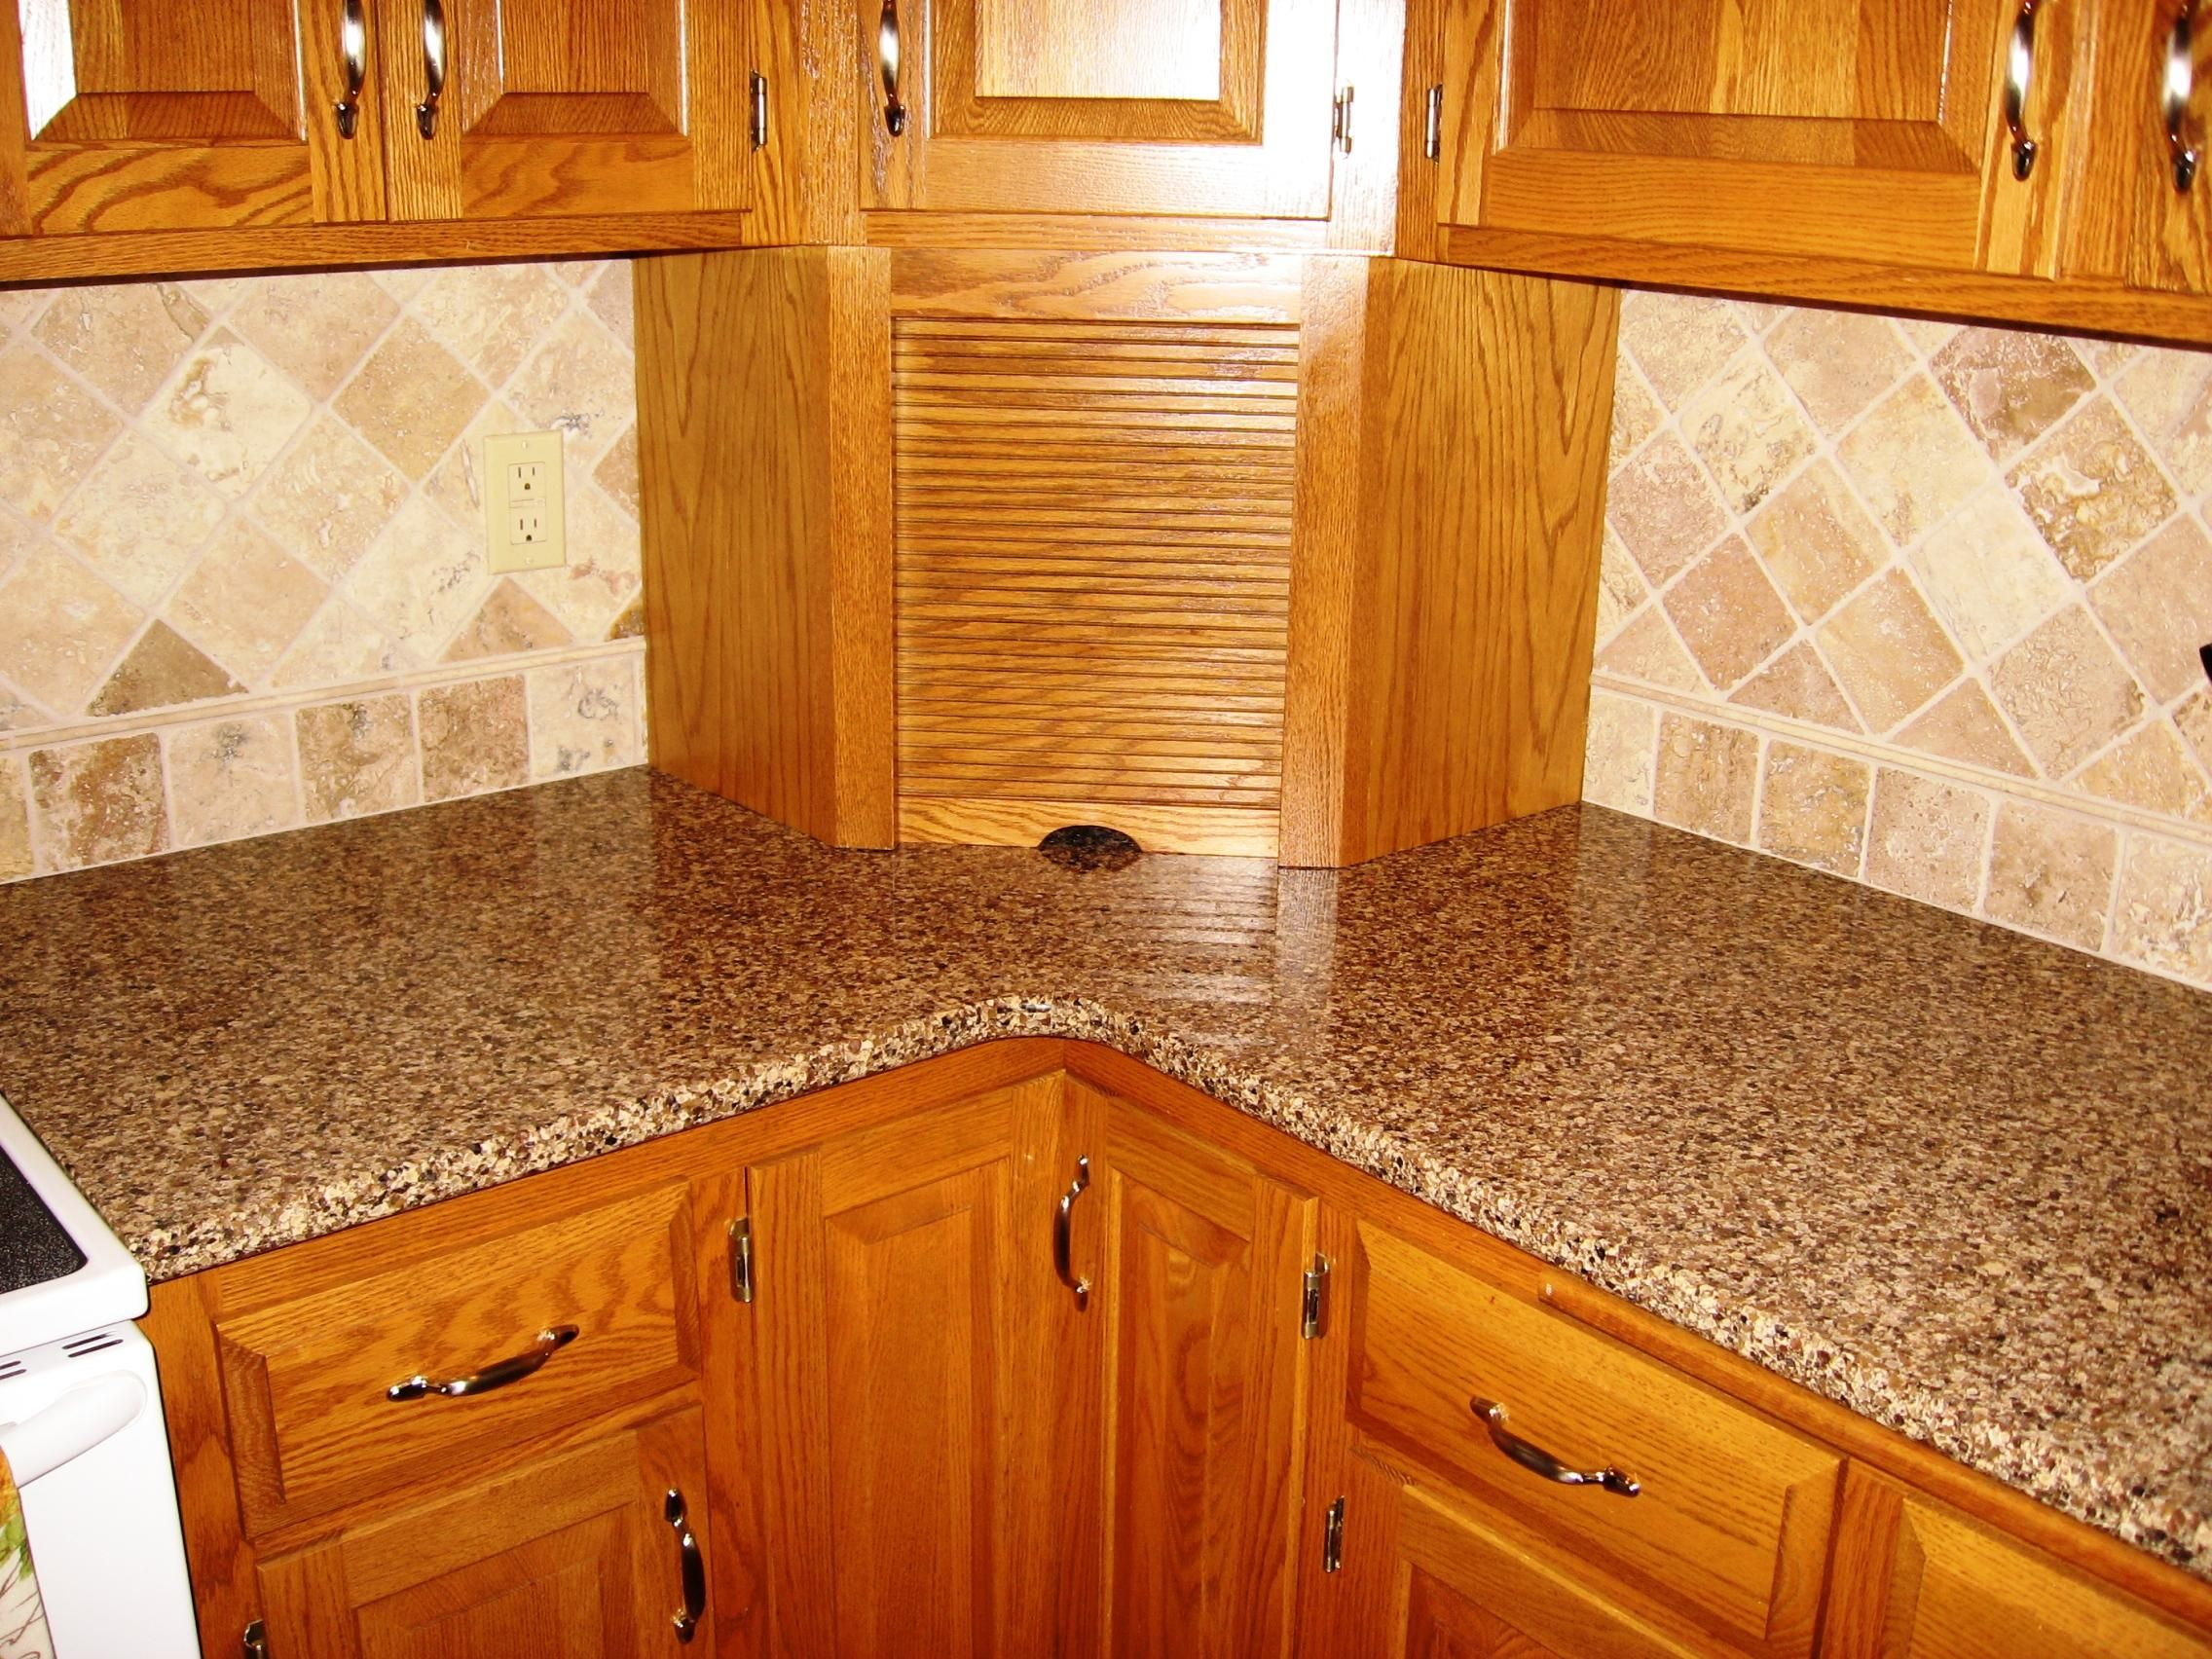 countertops, Granite countertops near me and Painting countertops ...